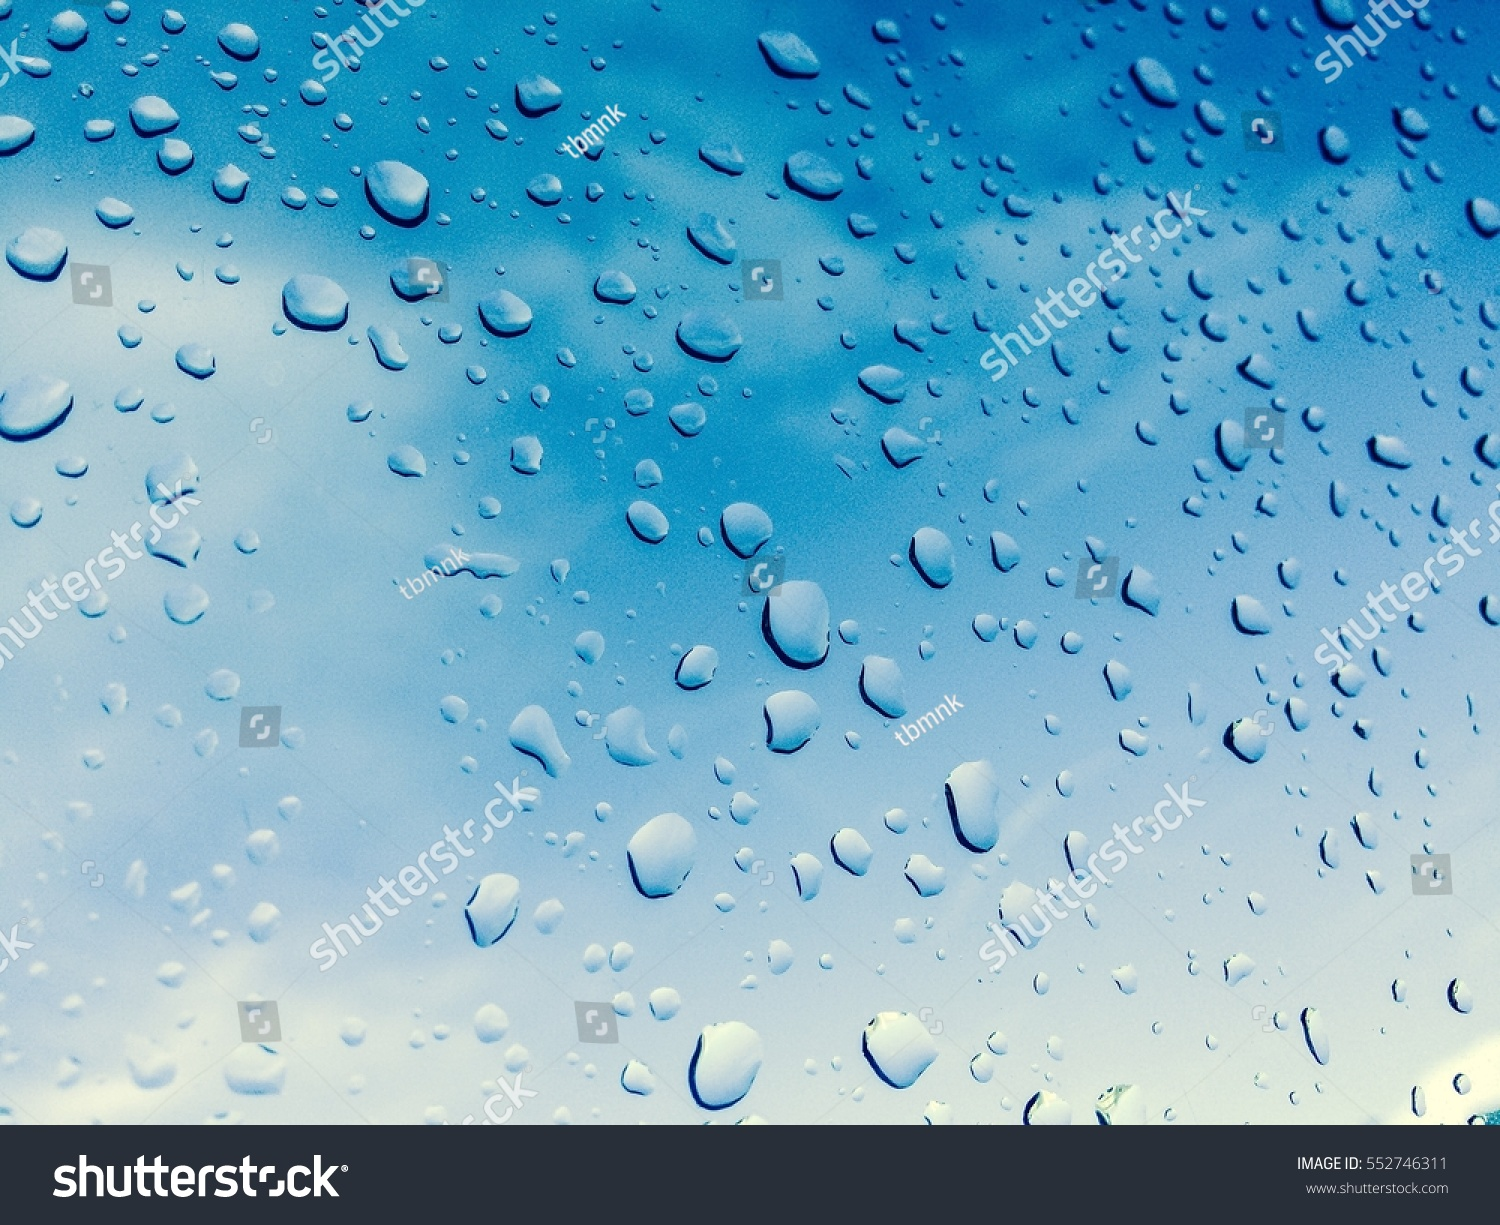 Water Drop Stock Image Of Perfection Raindrop Auto Circuit Board Drawing Texture Xxxl Photos Freeimagescom Rain Drops On Glass Clear Blue Photo 552746311